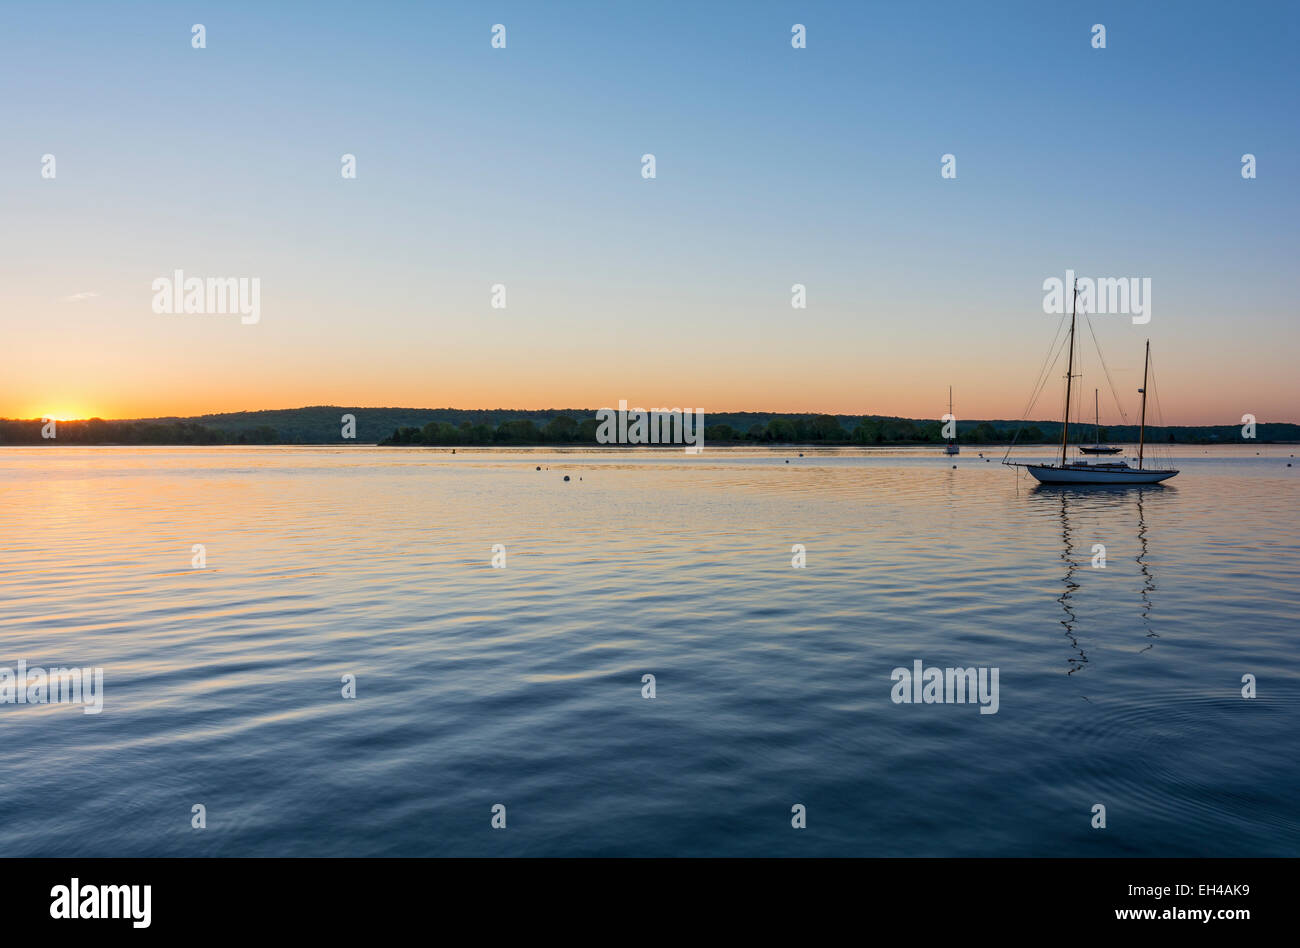 Connecticut River at Essex, sailboats, sunrise - Stock Image